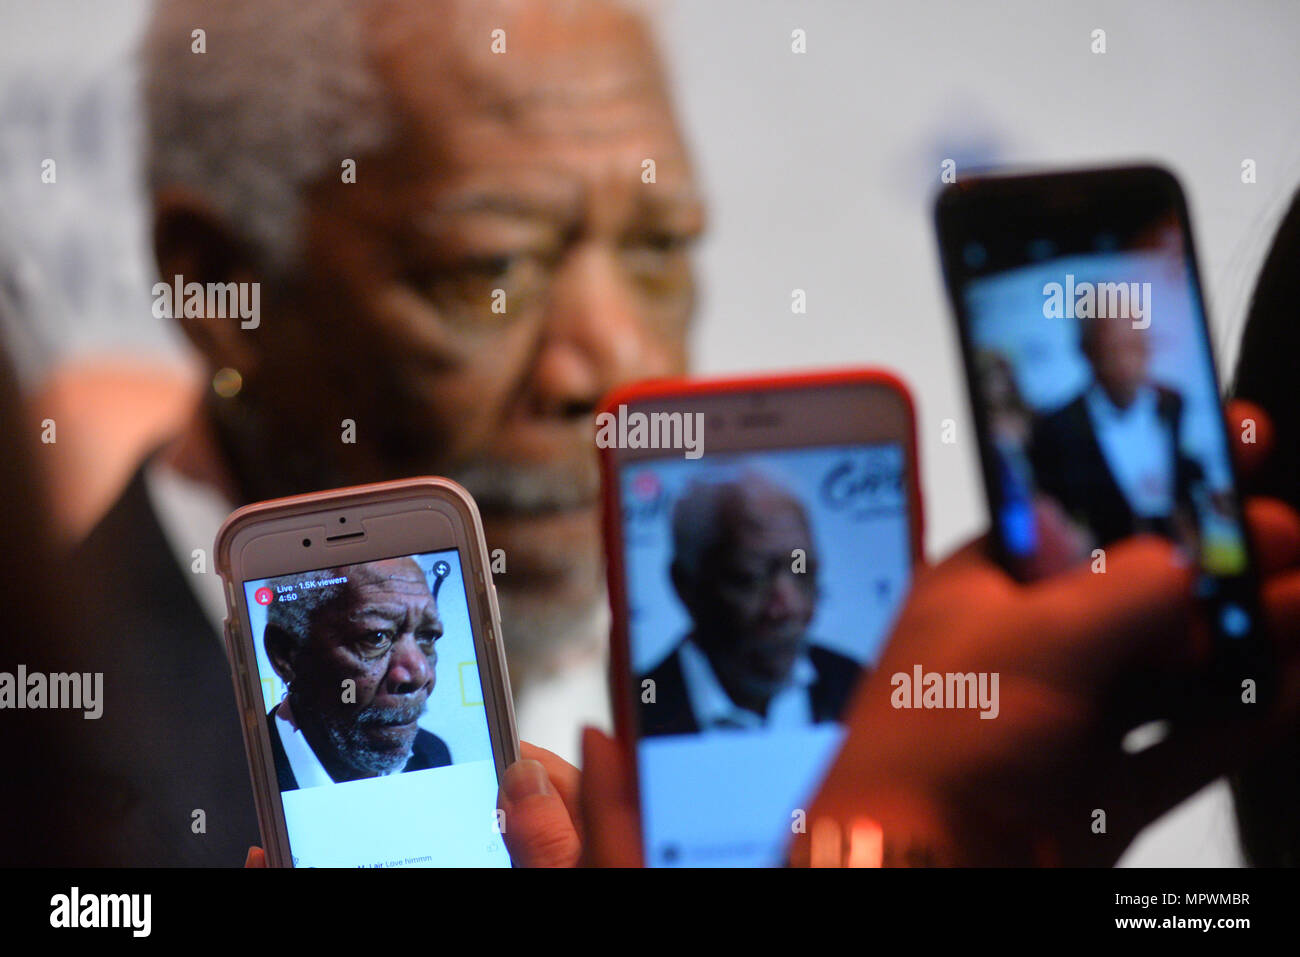 Morgan Freeman gets snapped by cameraphones while attending National Geographic 'The Story Of God' With Morgan Freeman World Premiere at Jazz at Linco - Stock Image